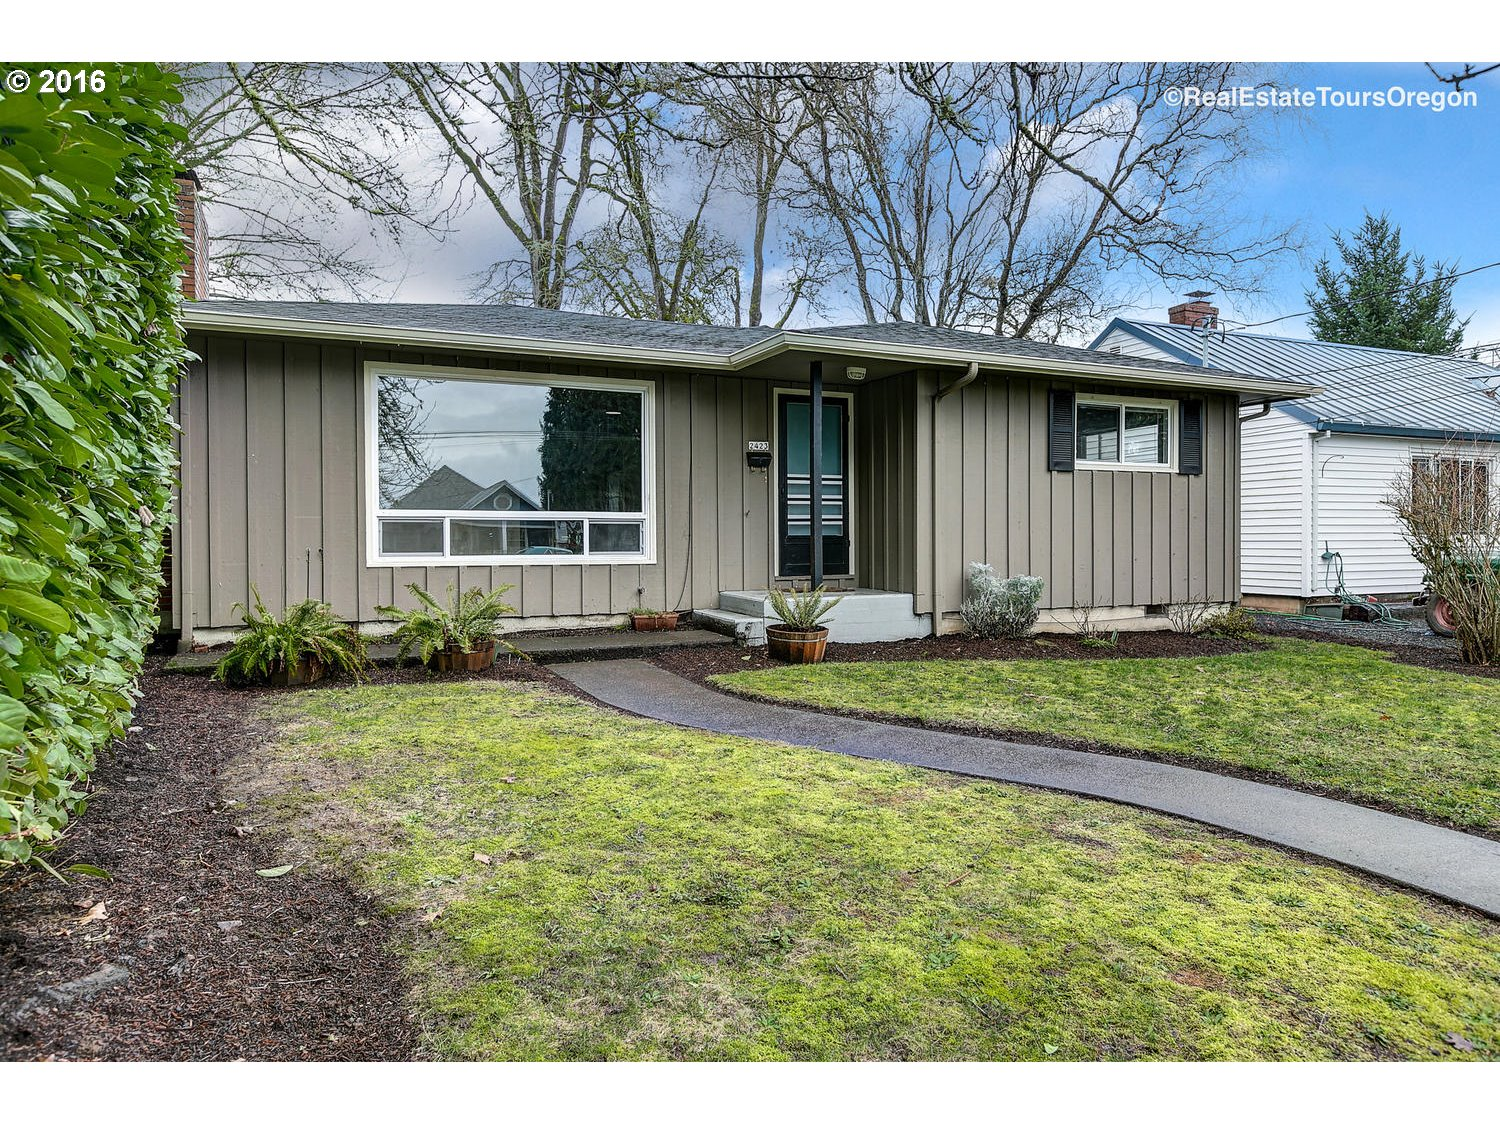 2423 14th Ave, Forest Grove, OR